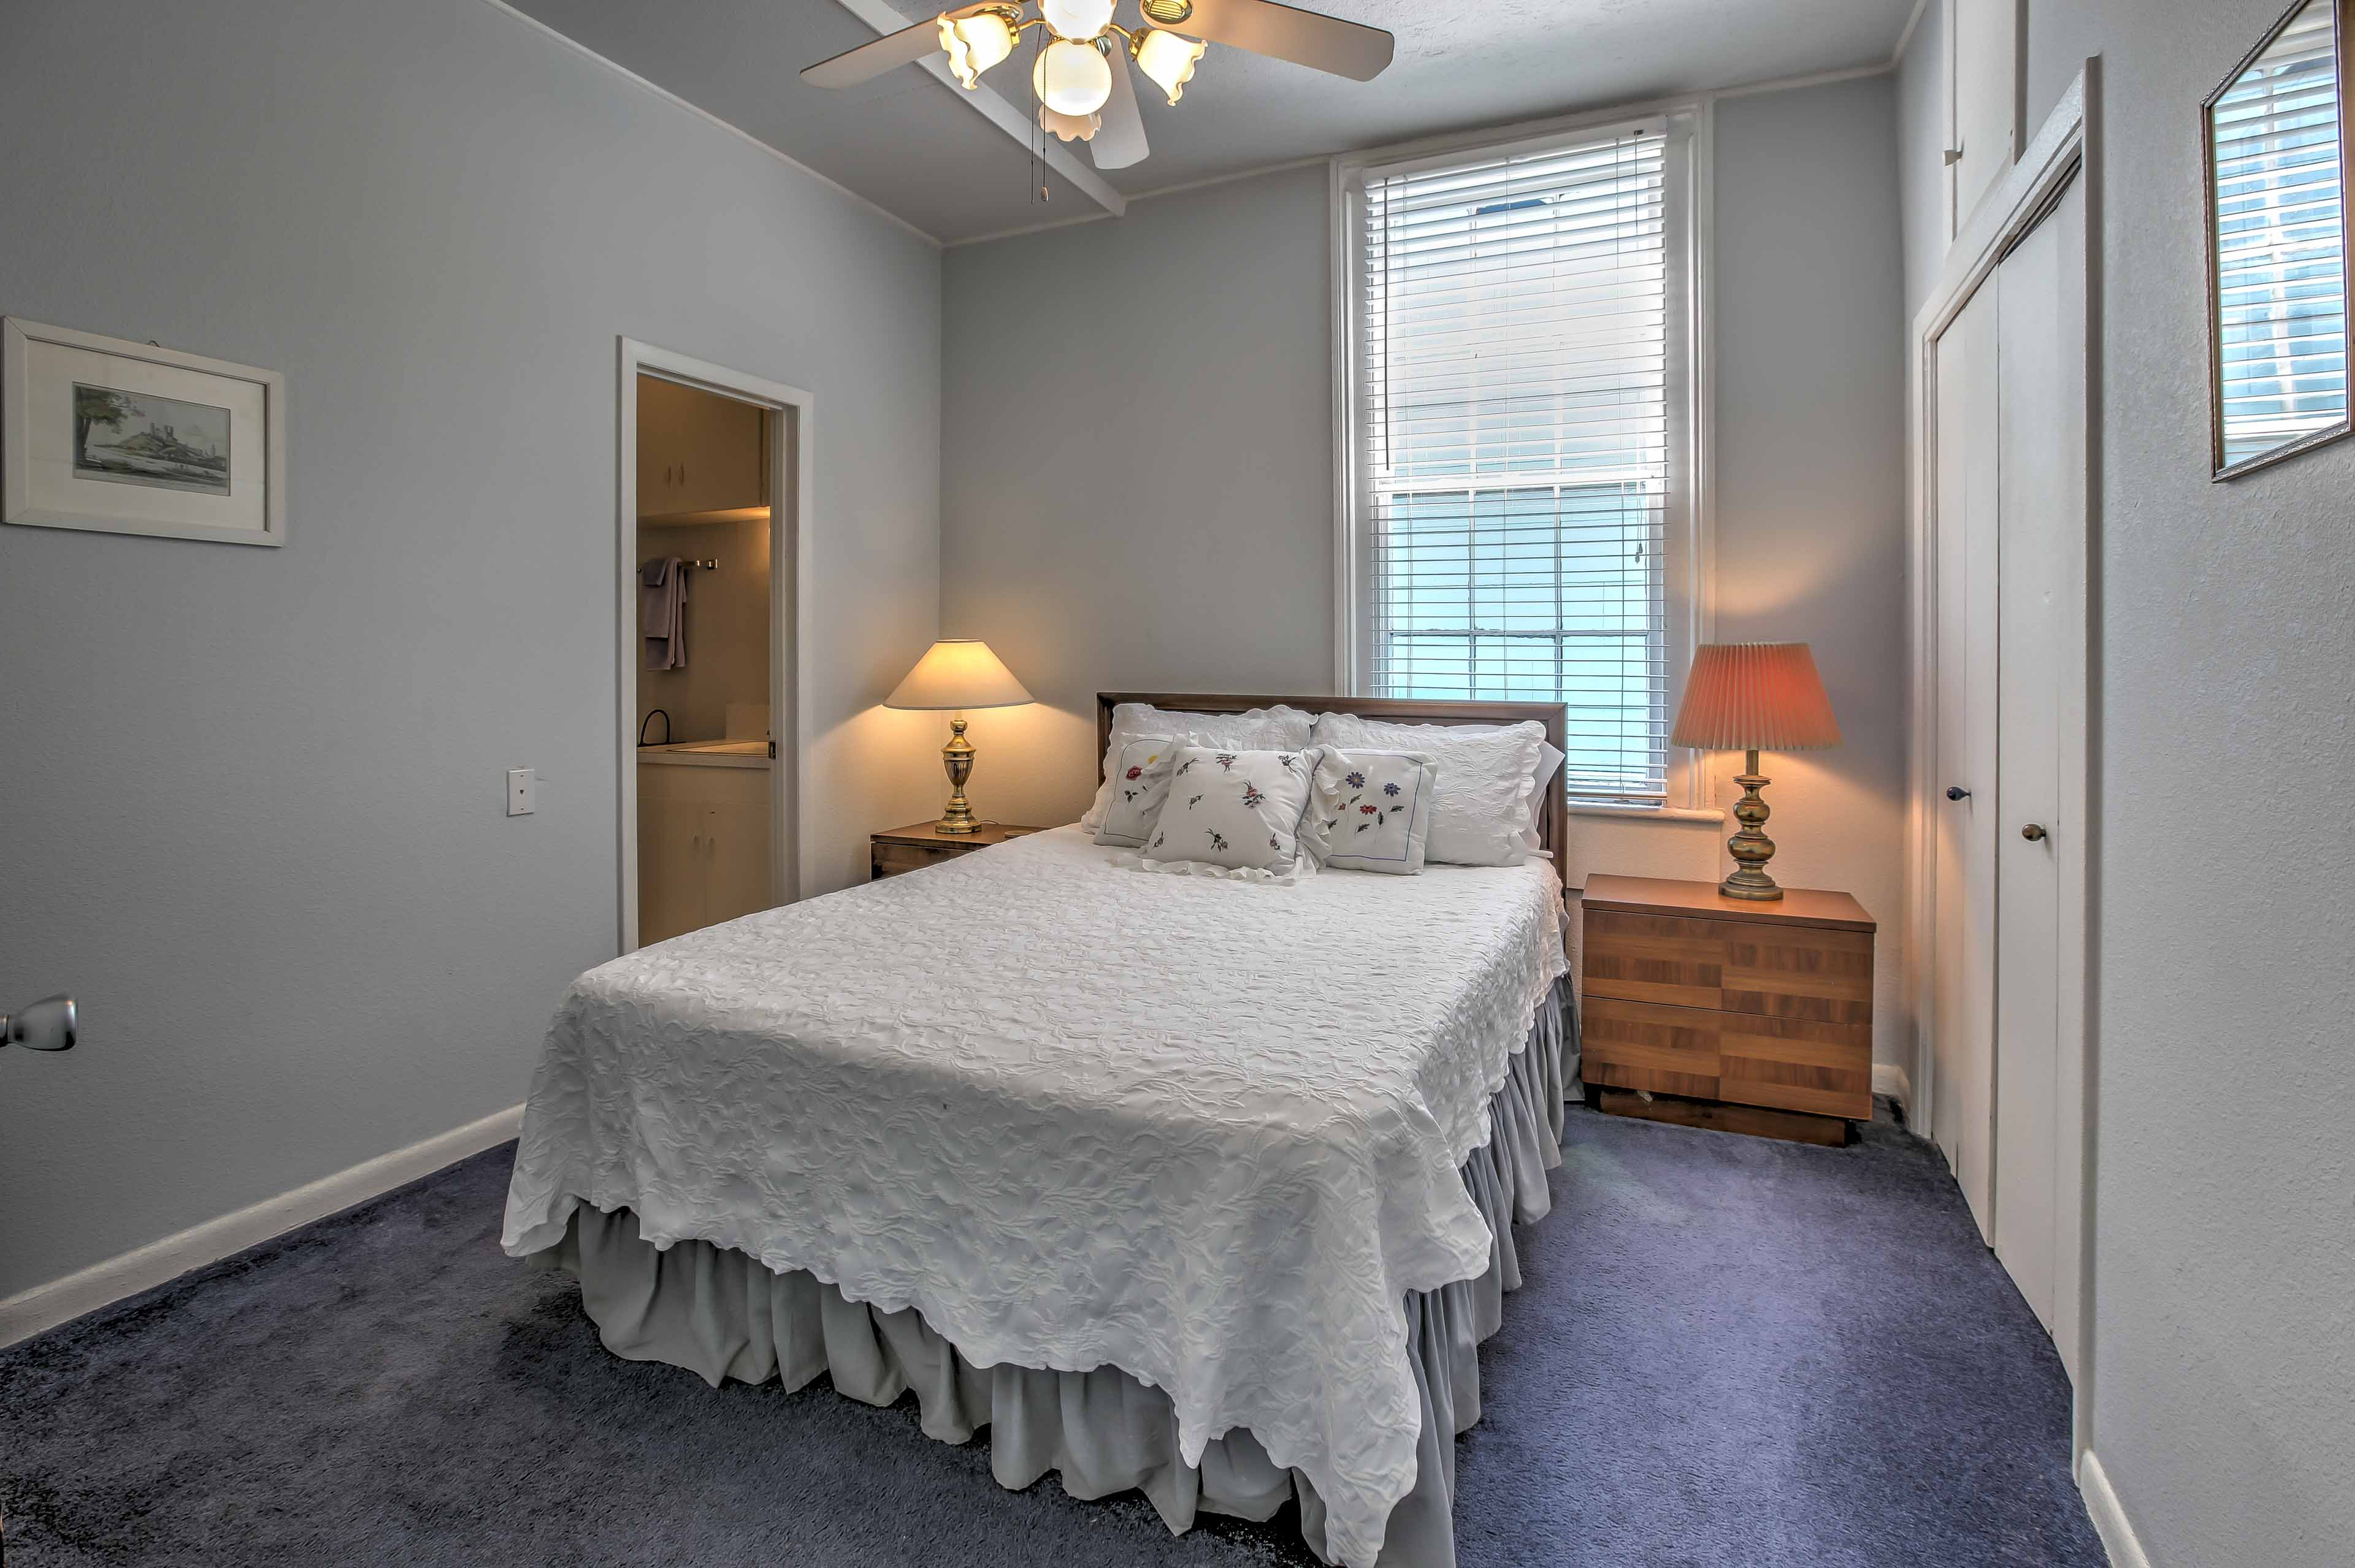 The master bedroom and front bedroom have queen beds and private bathrooms.